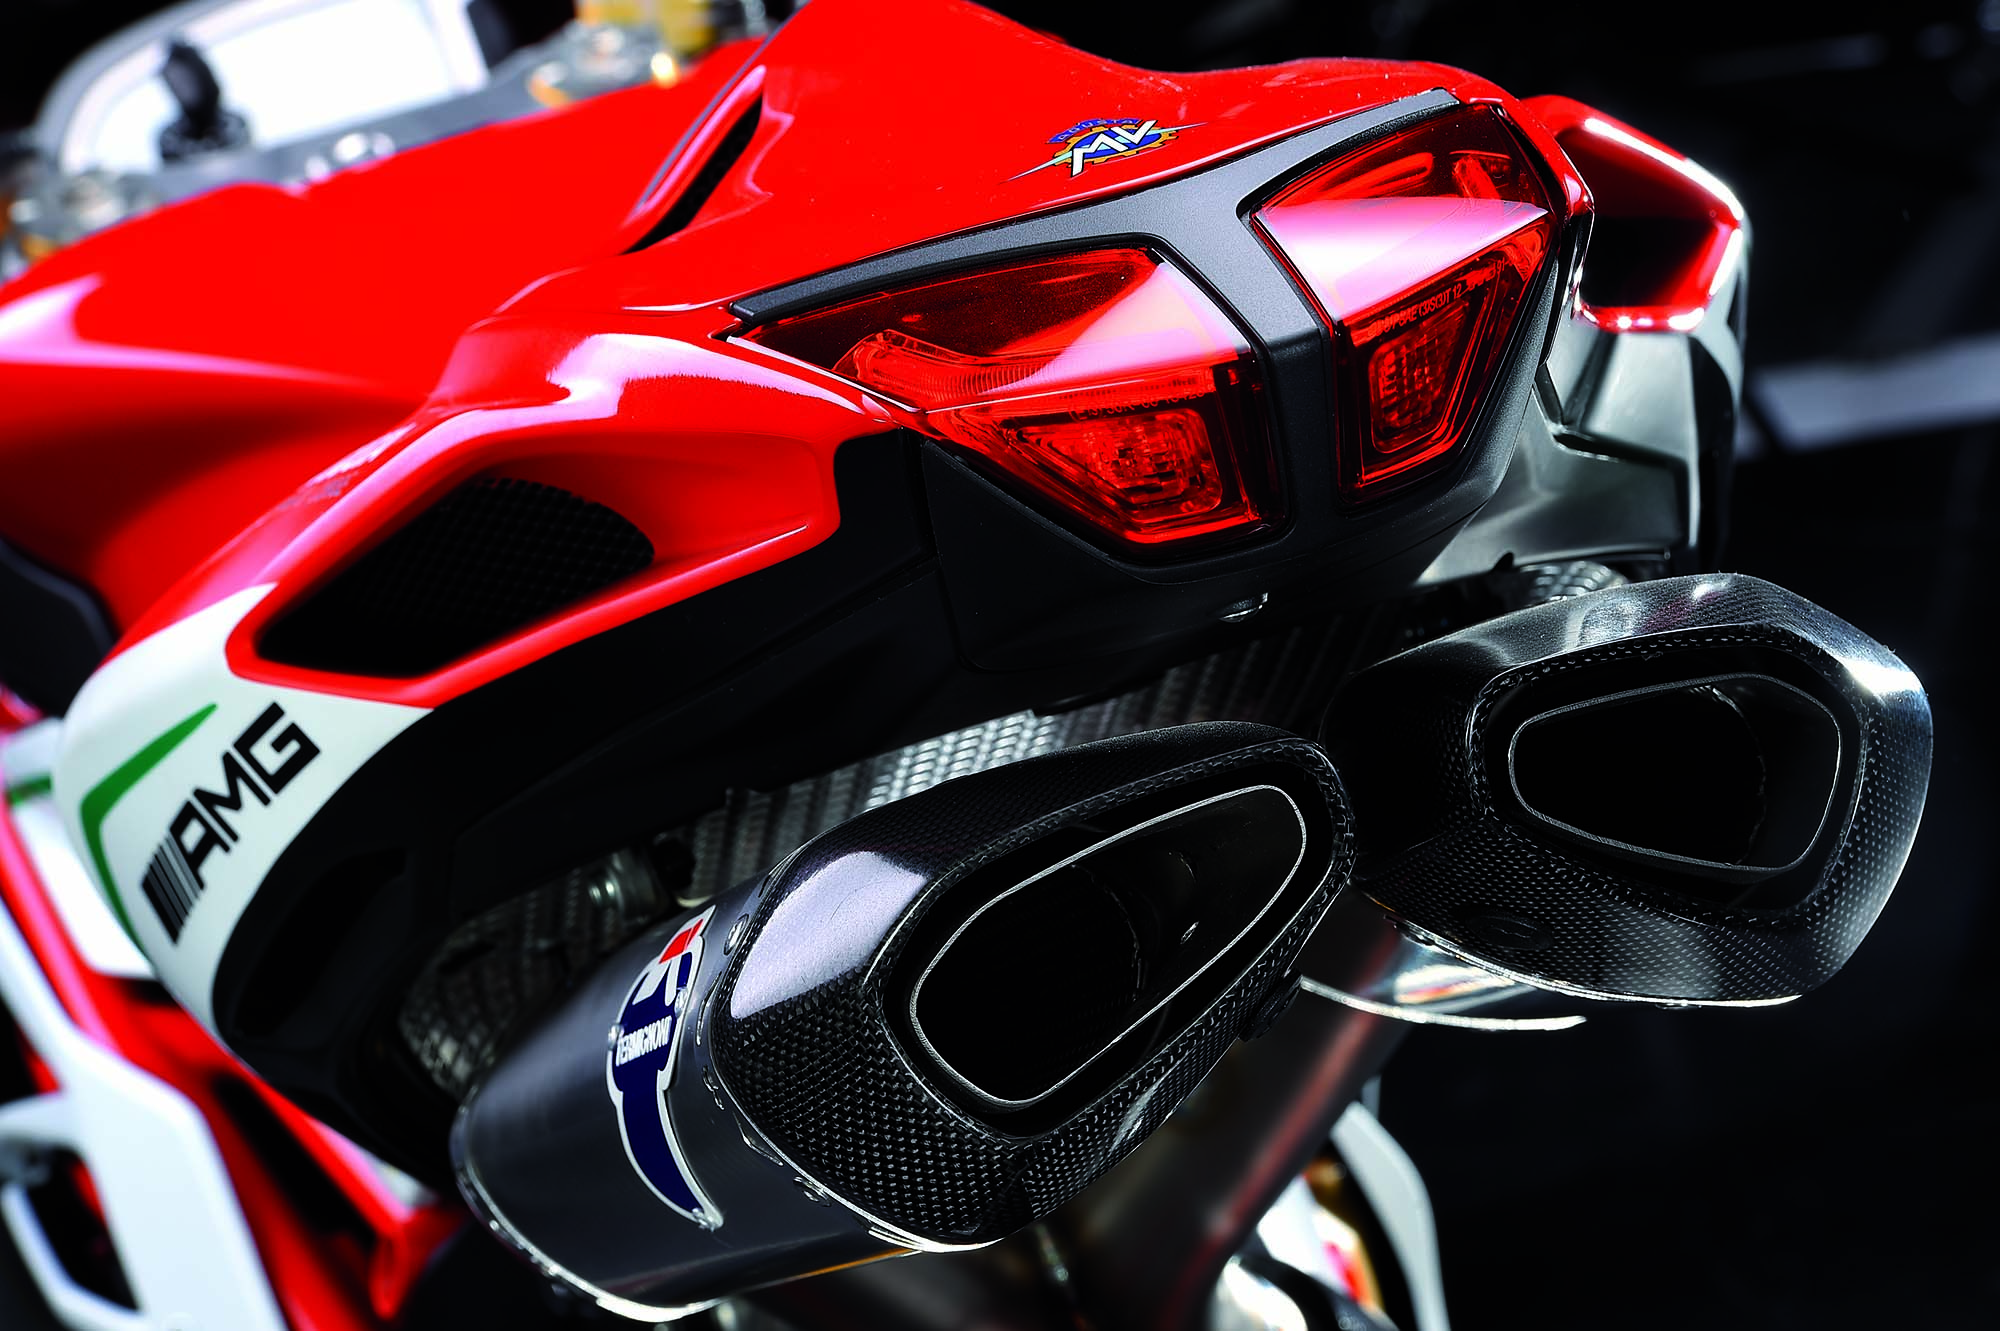 2015 mv agusta f4 rc varese 39 s homologation special asphalt rubber. Black Bedroom Furniture Sets. Home Design Ideas